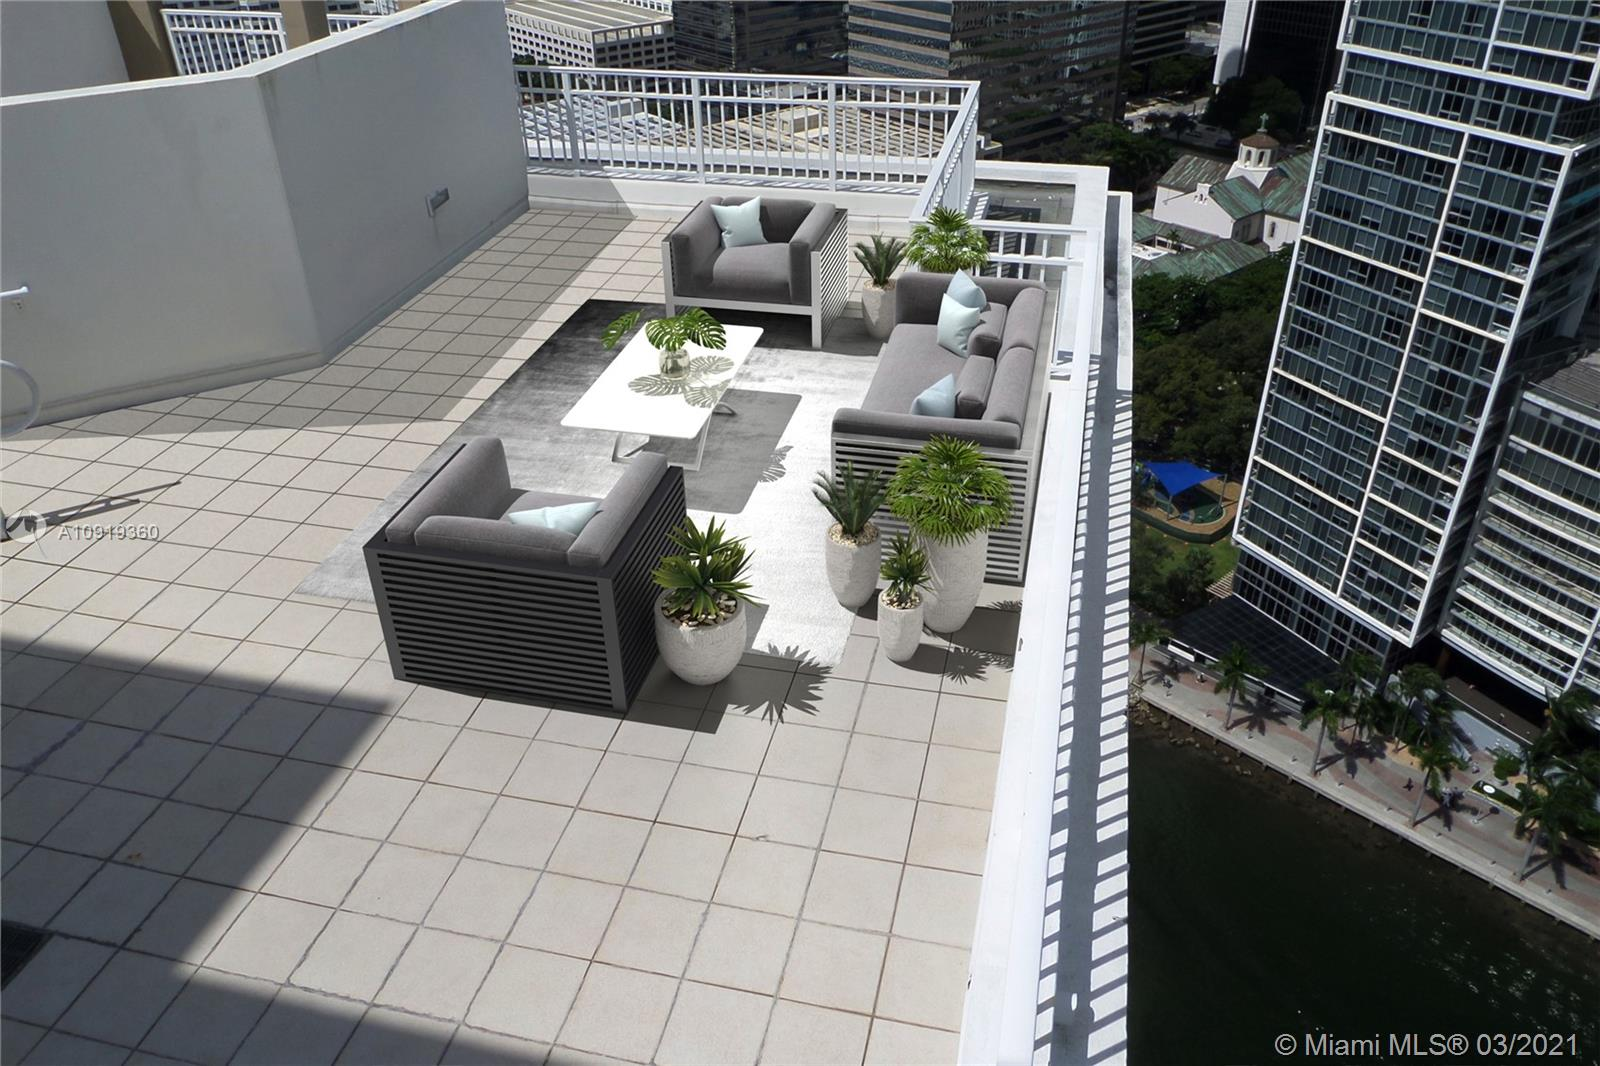 Courts Brickell Key #PH3304 - 801 Brickell Key Blvd #PH3304, Miami, FL 33131